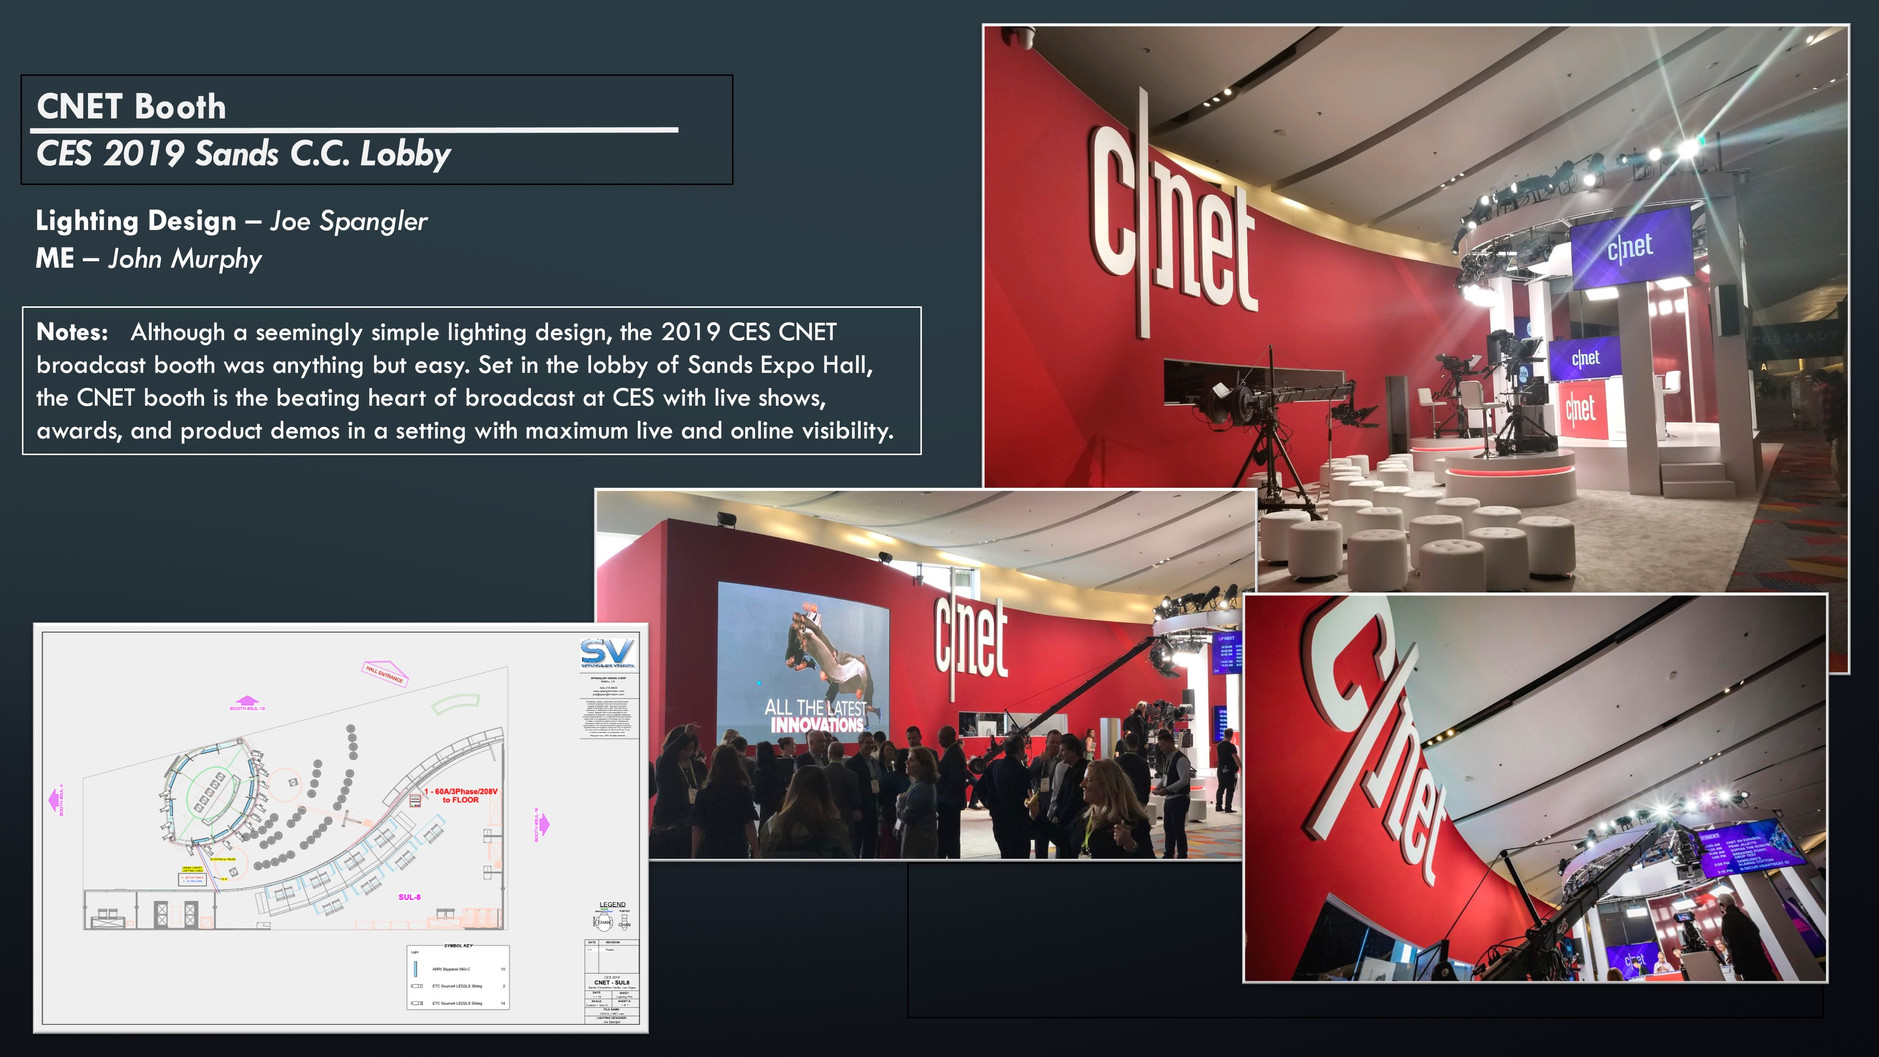 CNET at CES 2019